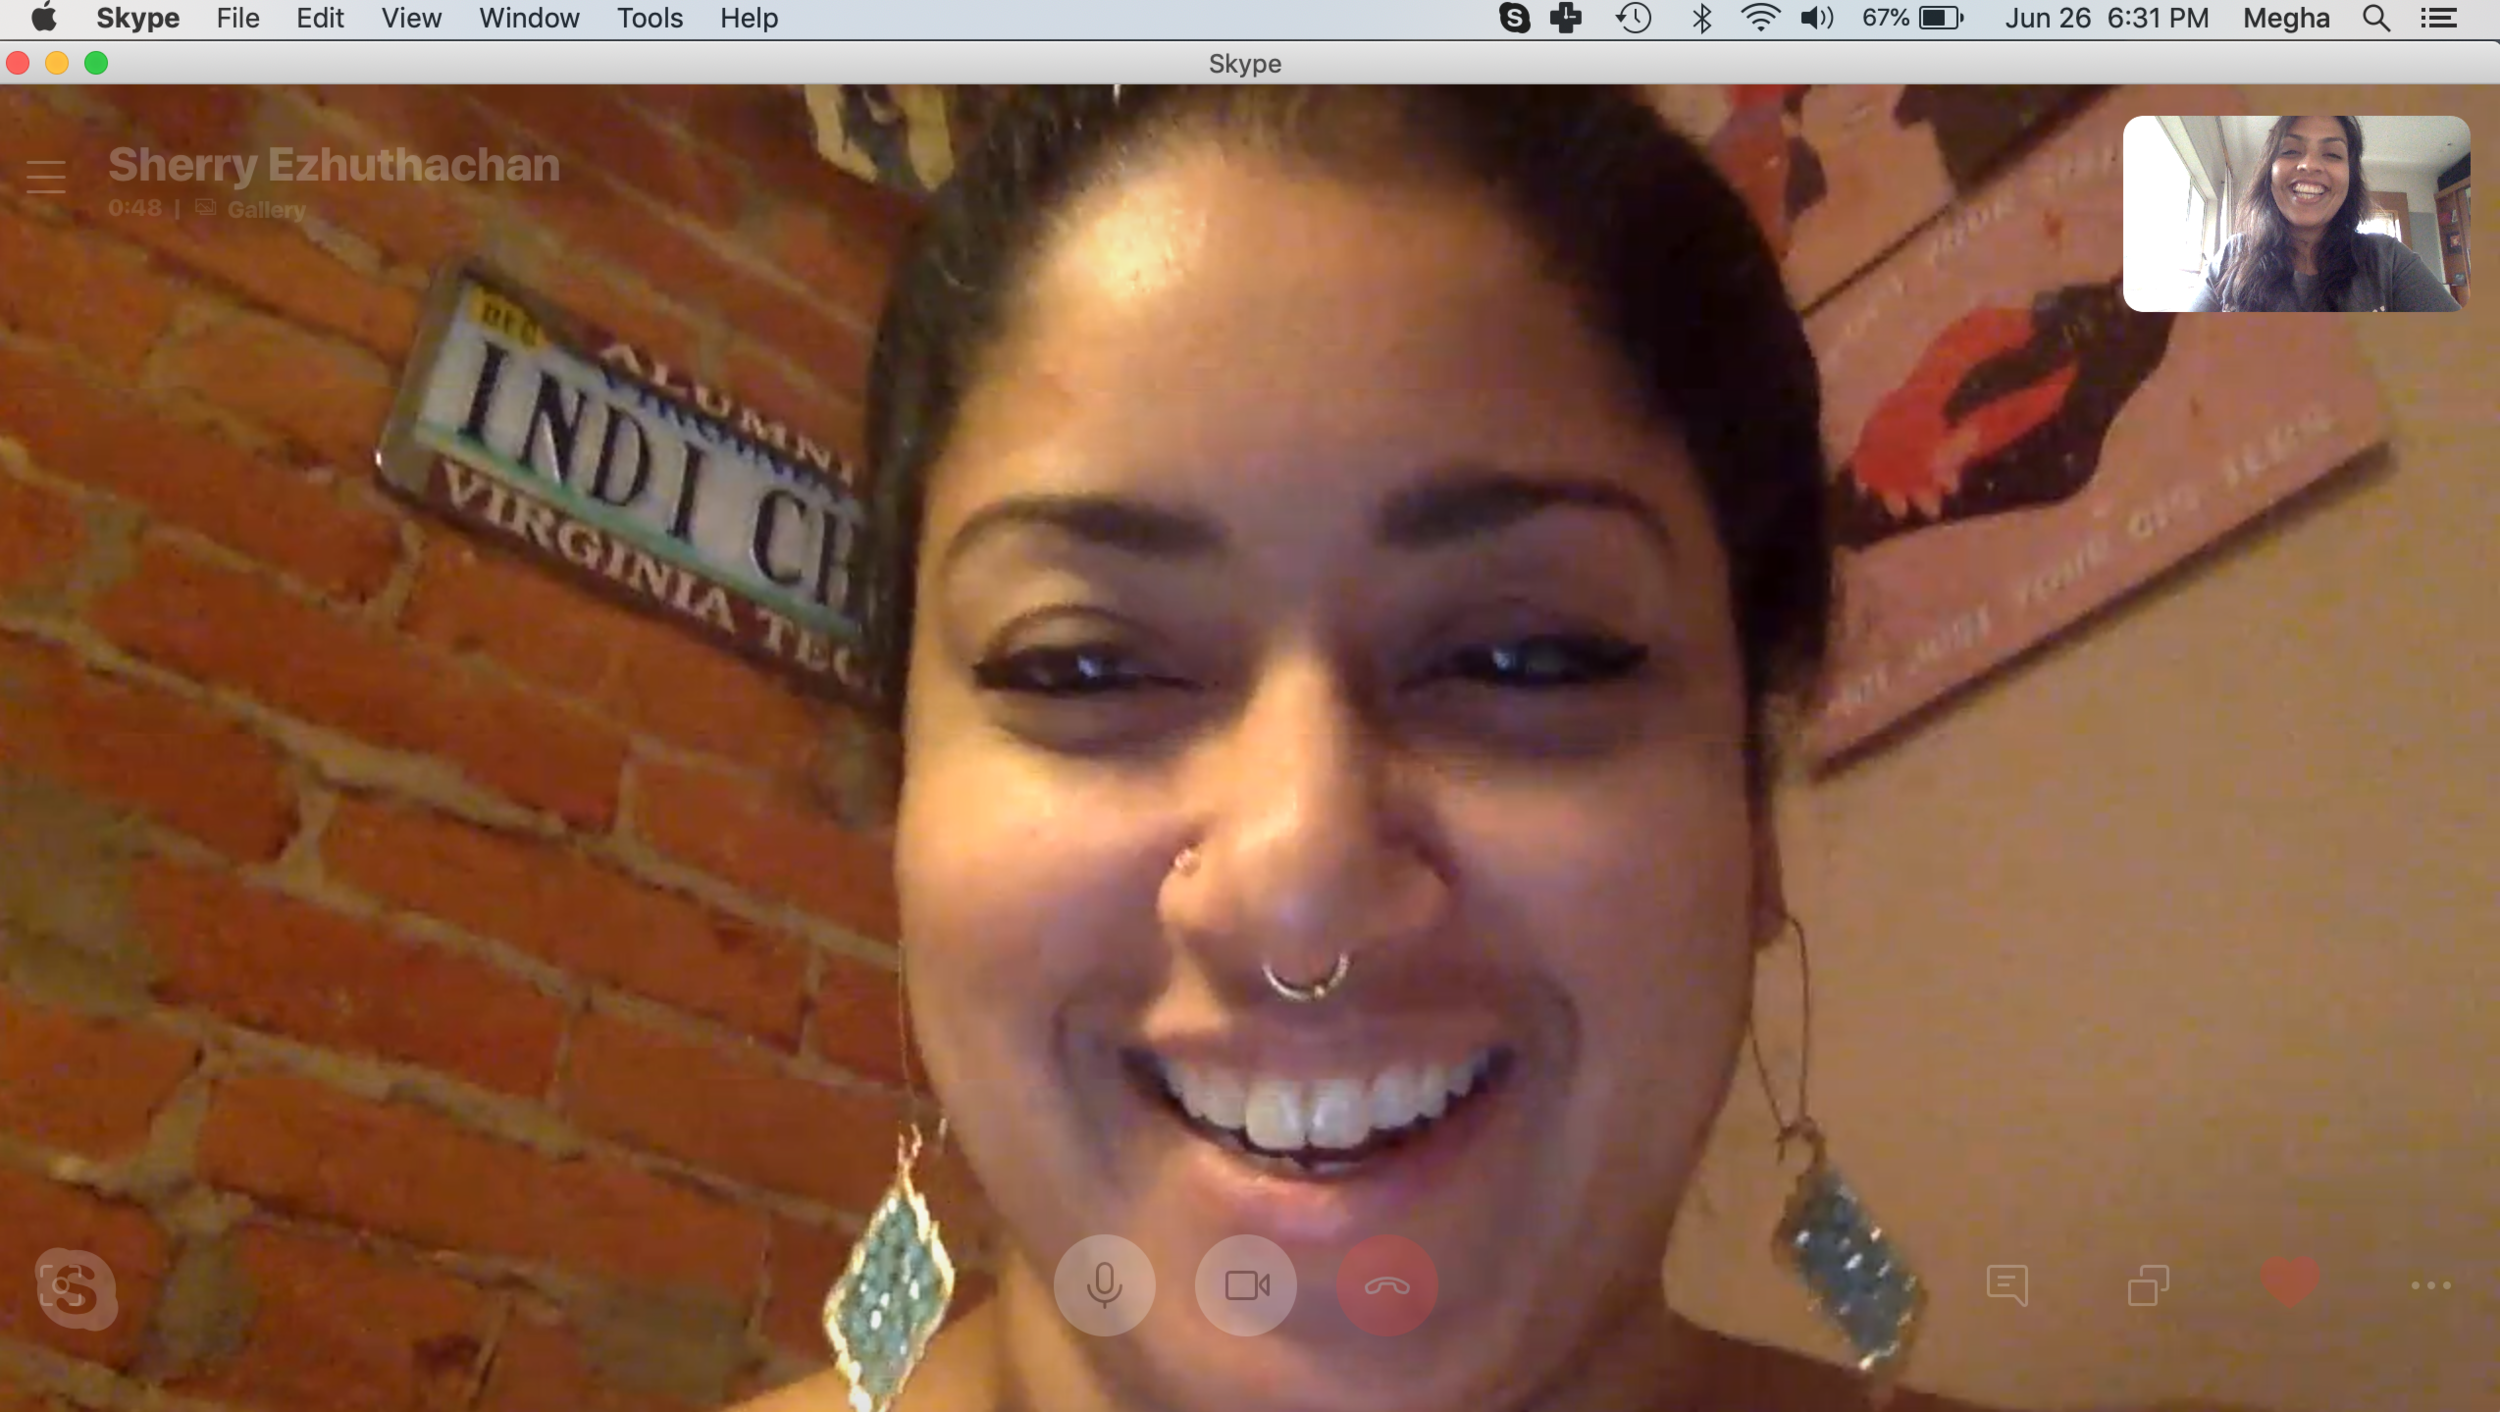 During one of my calls with Sherry!